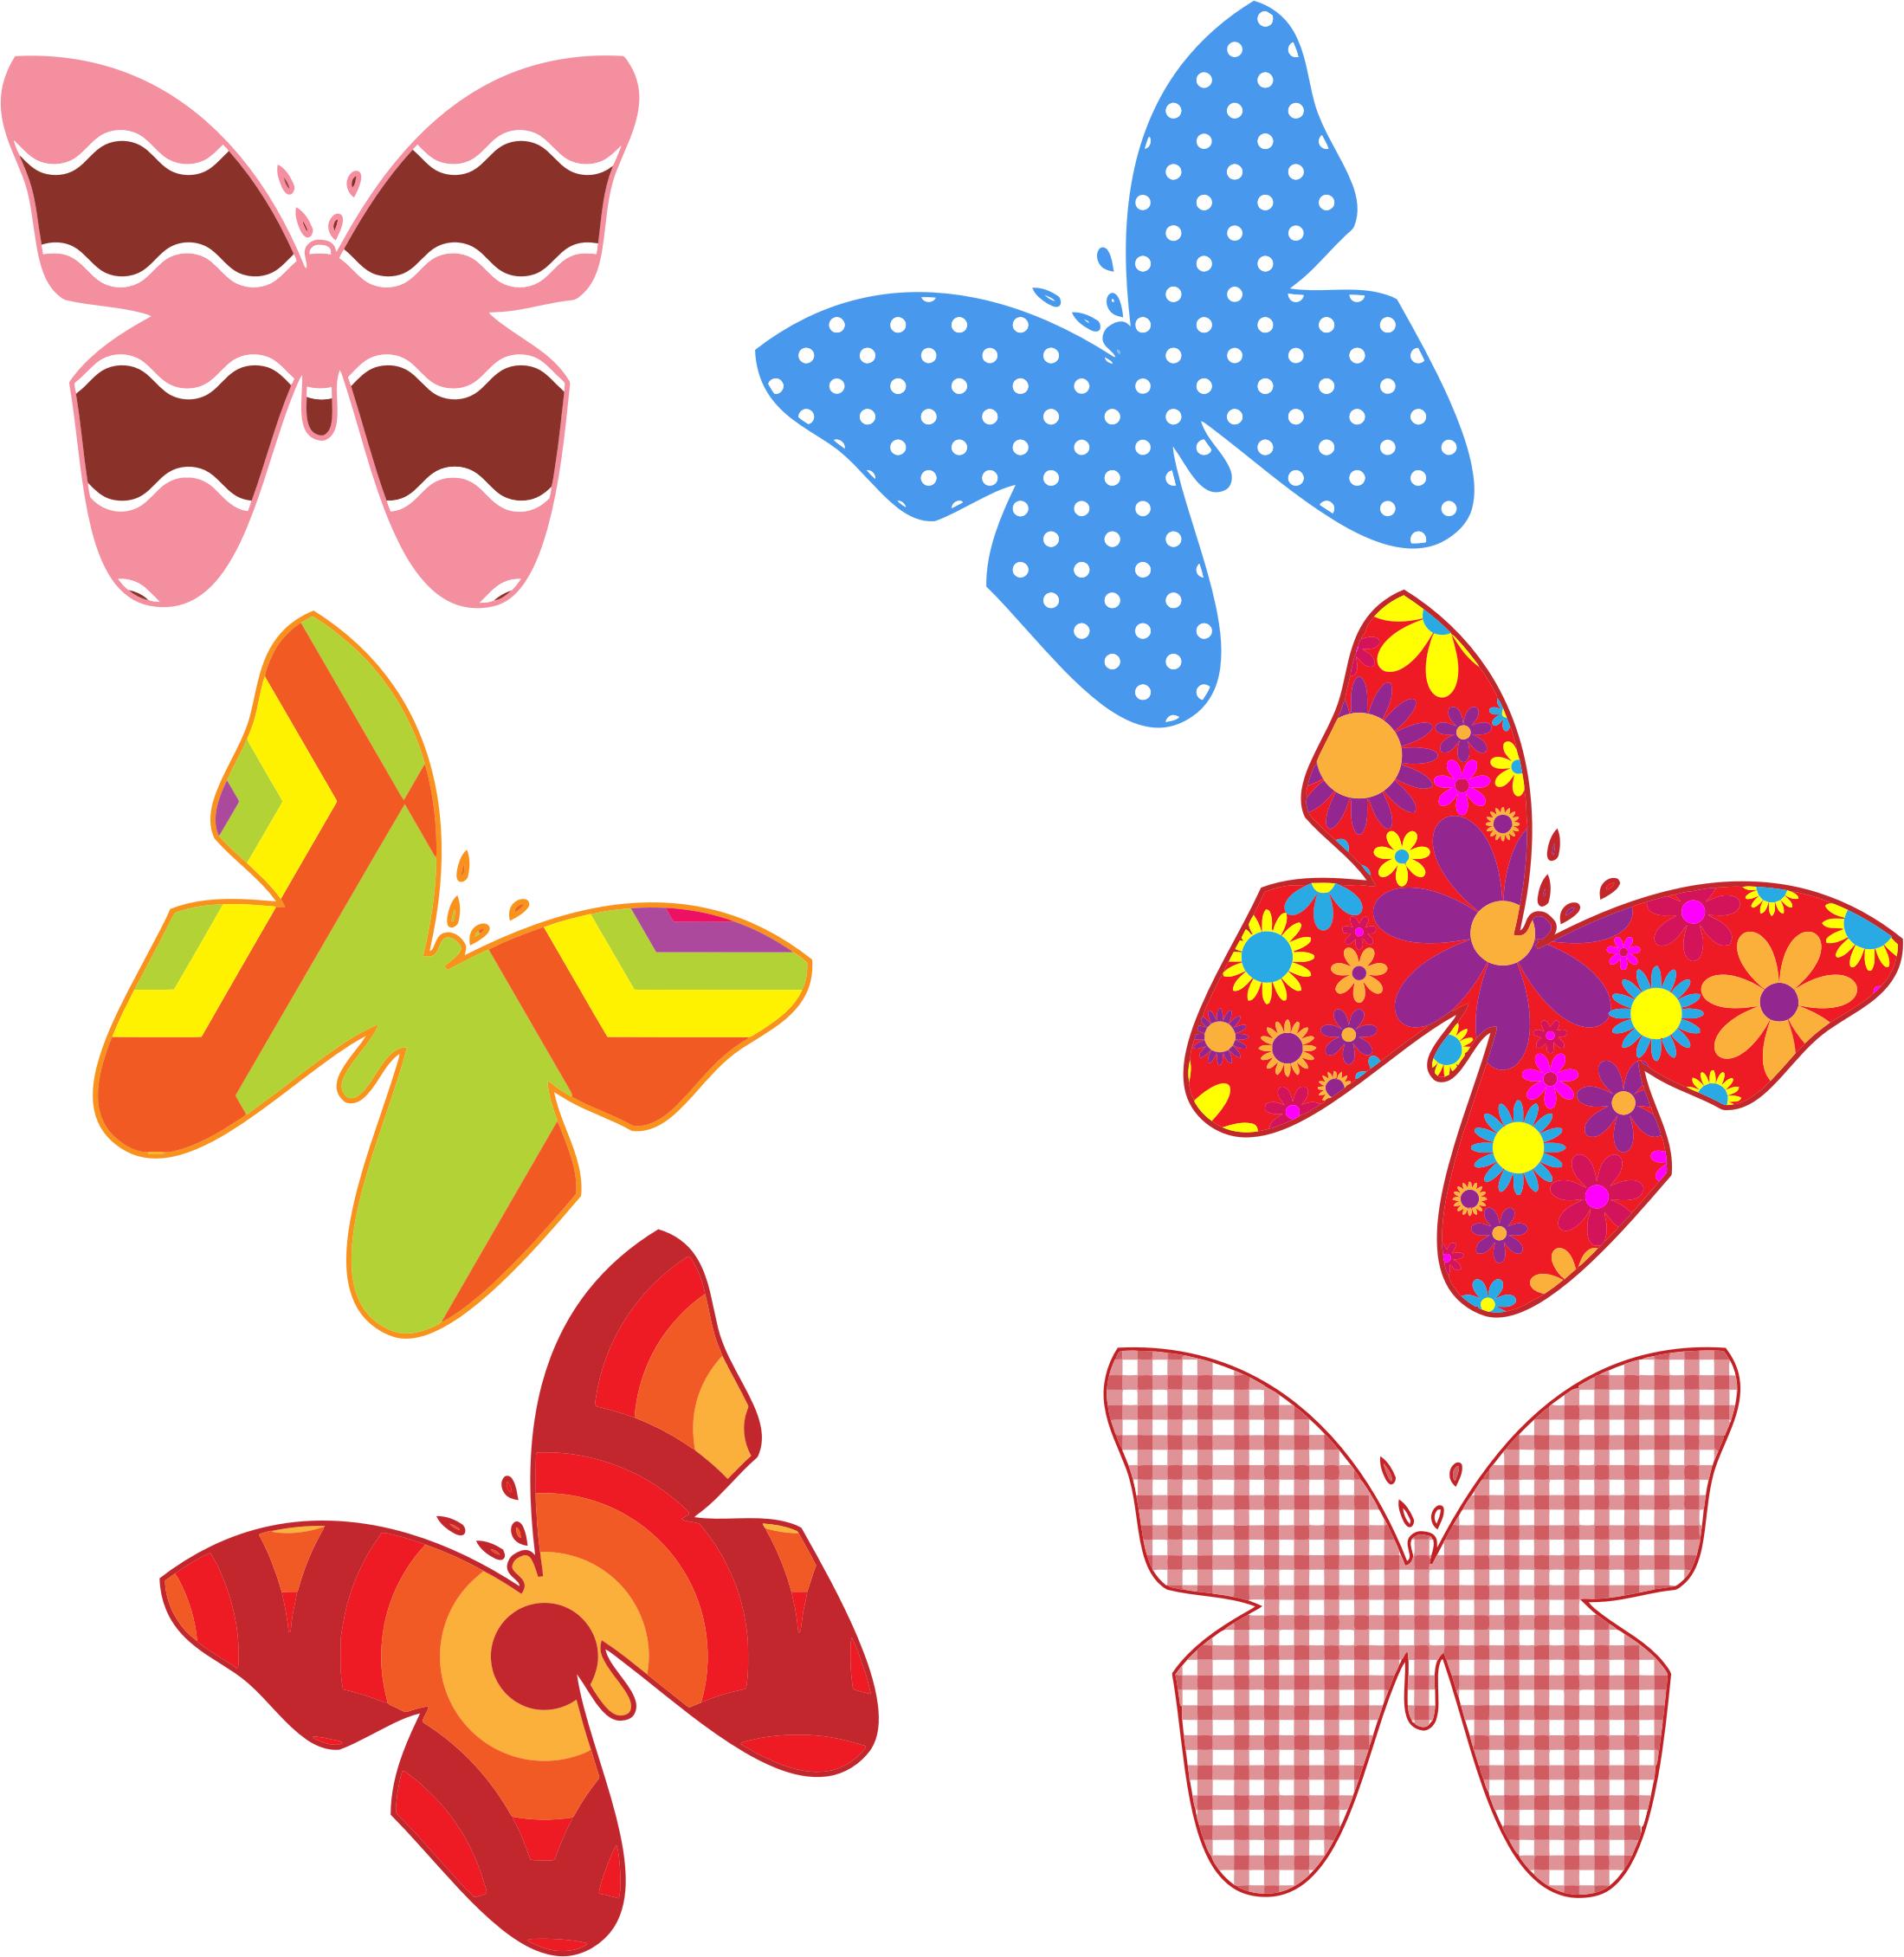 Design clipart butterfly, Design butterfly Transparent FREE.